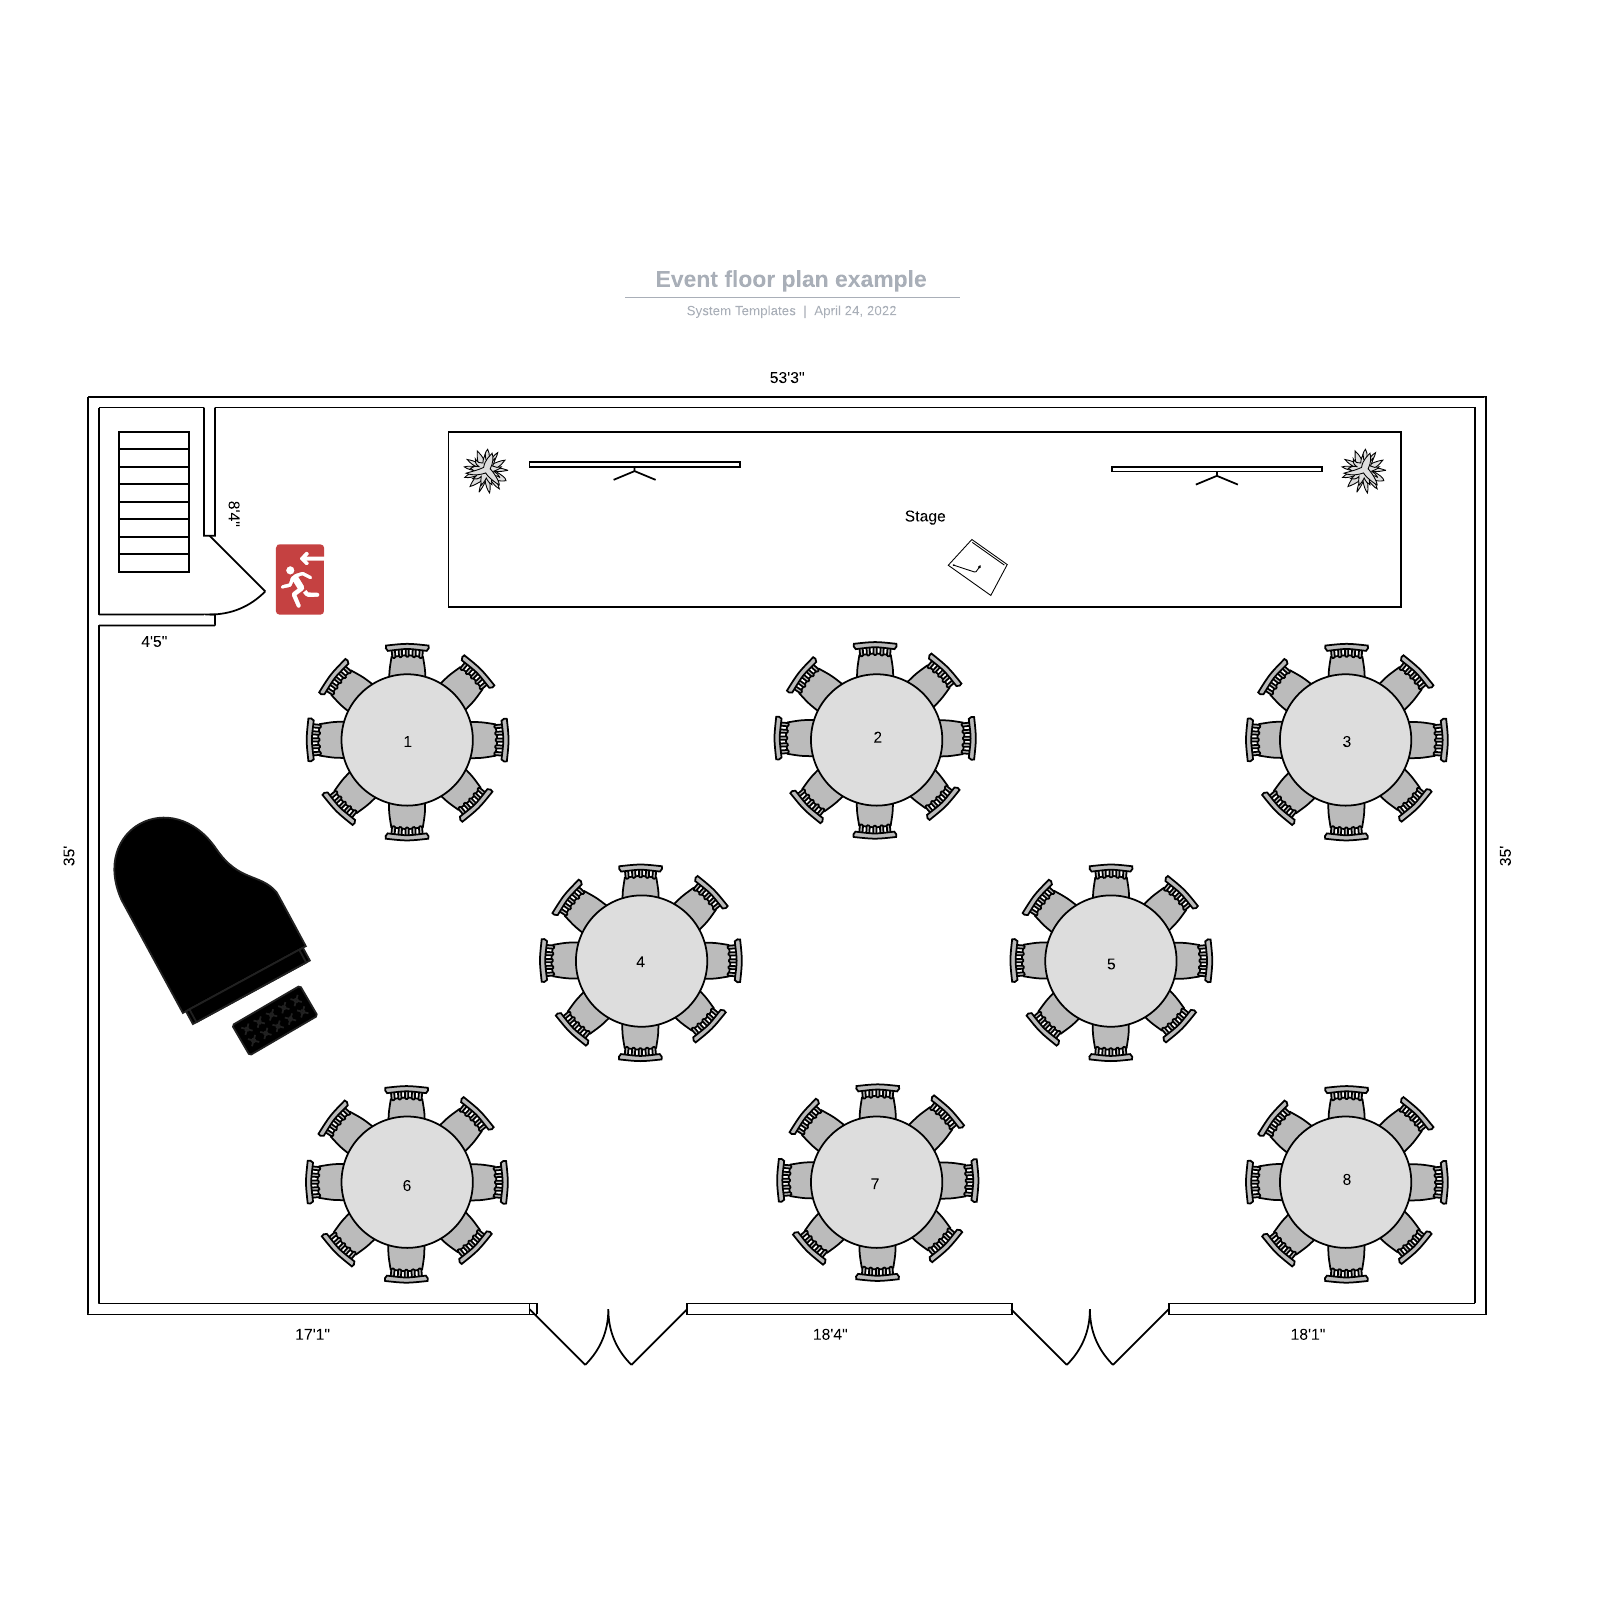 Event floor plan example